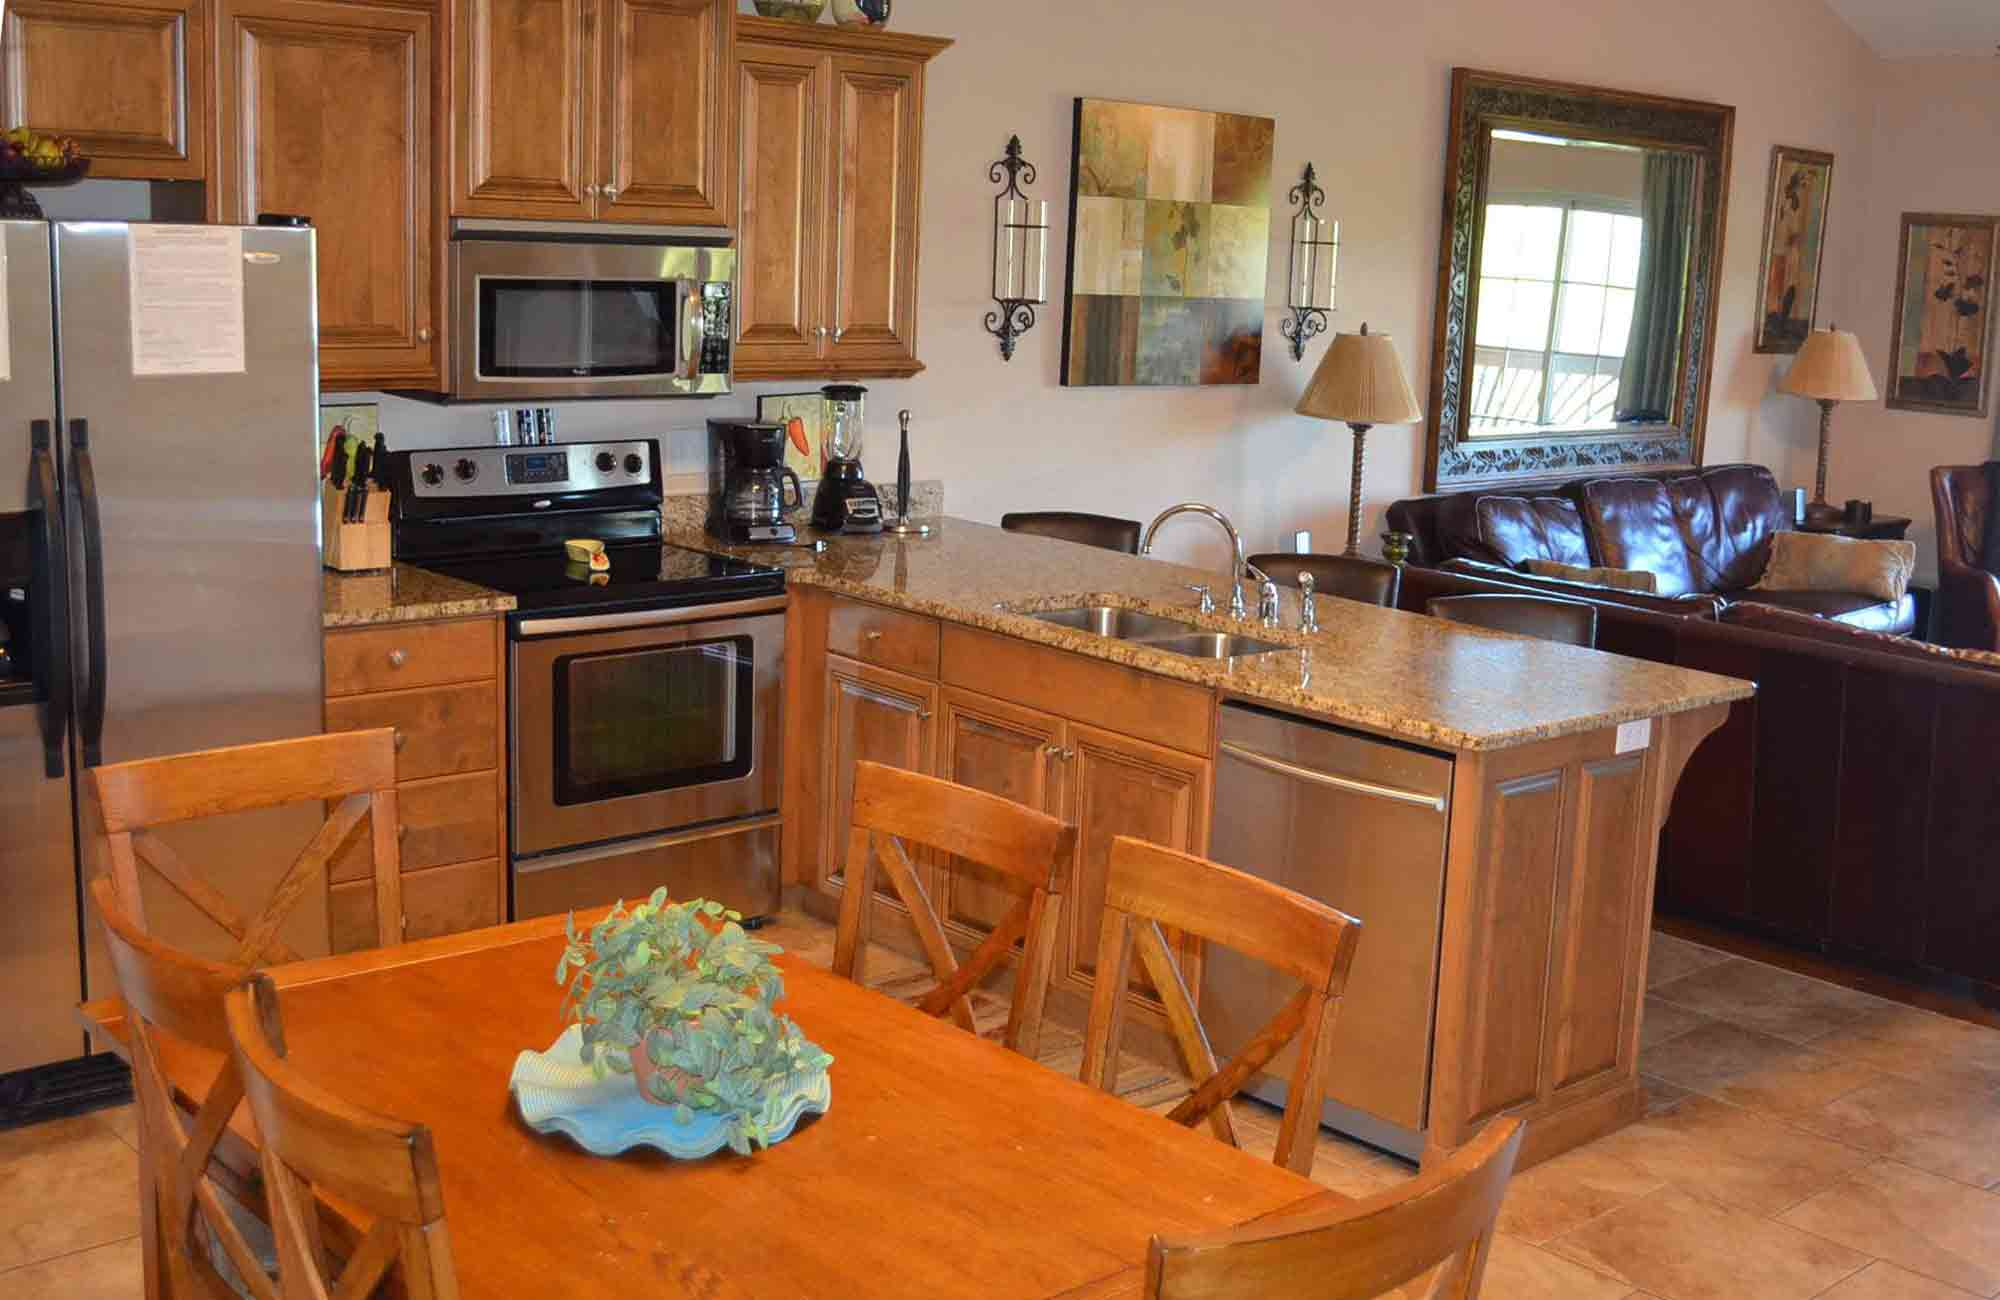 This is a header image that shows the kitchen in this nightly rental table rock lake condo